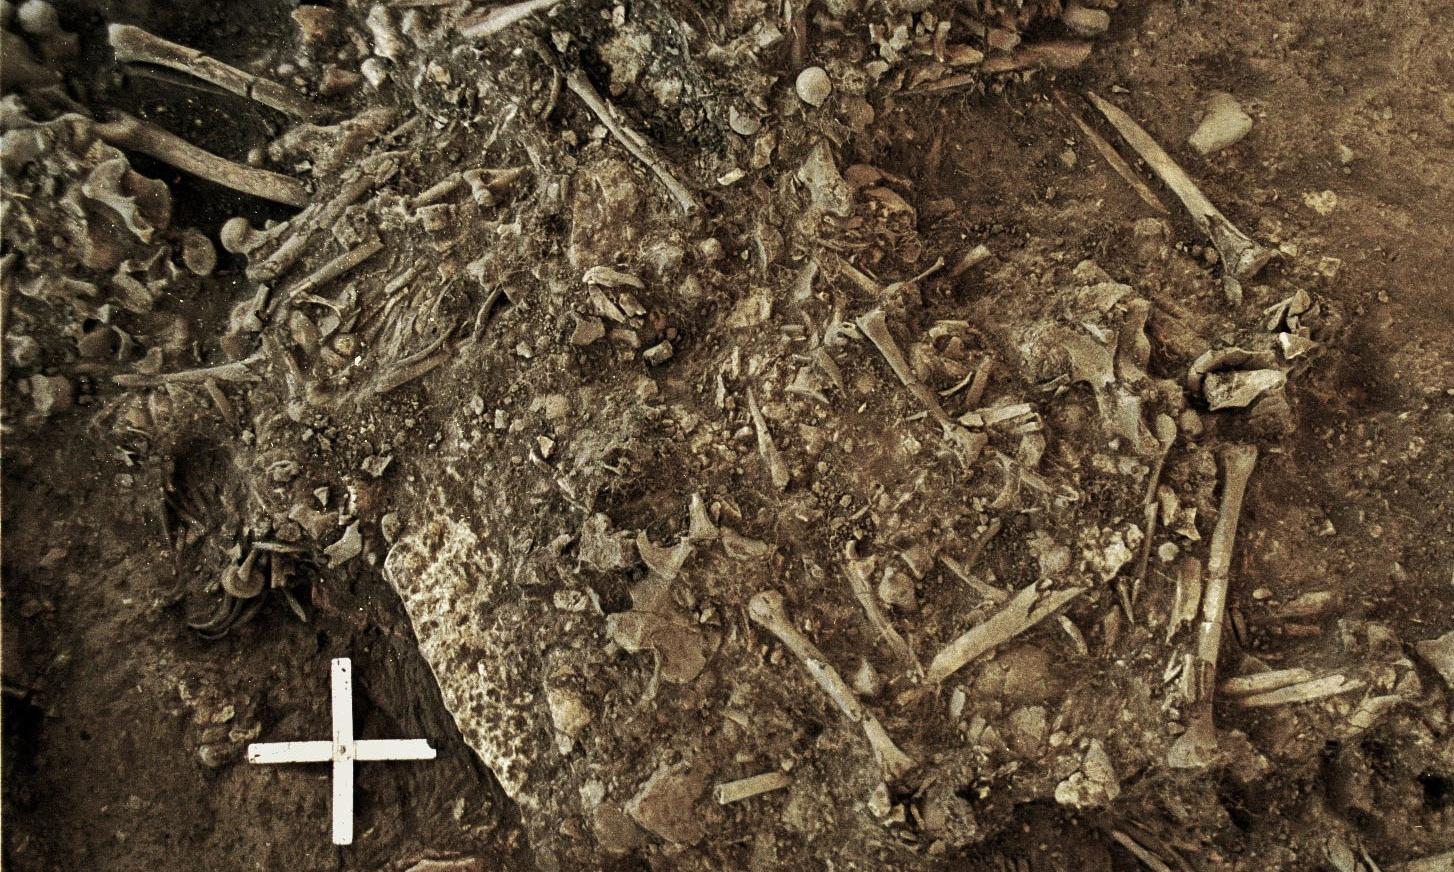 Earliest plague strain found in Sweden holds clue to stone age migration from east